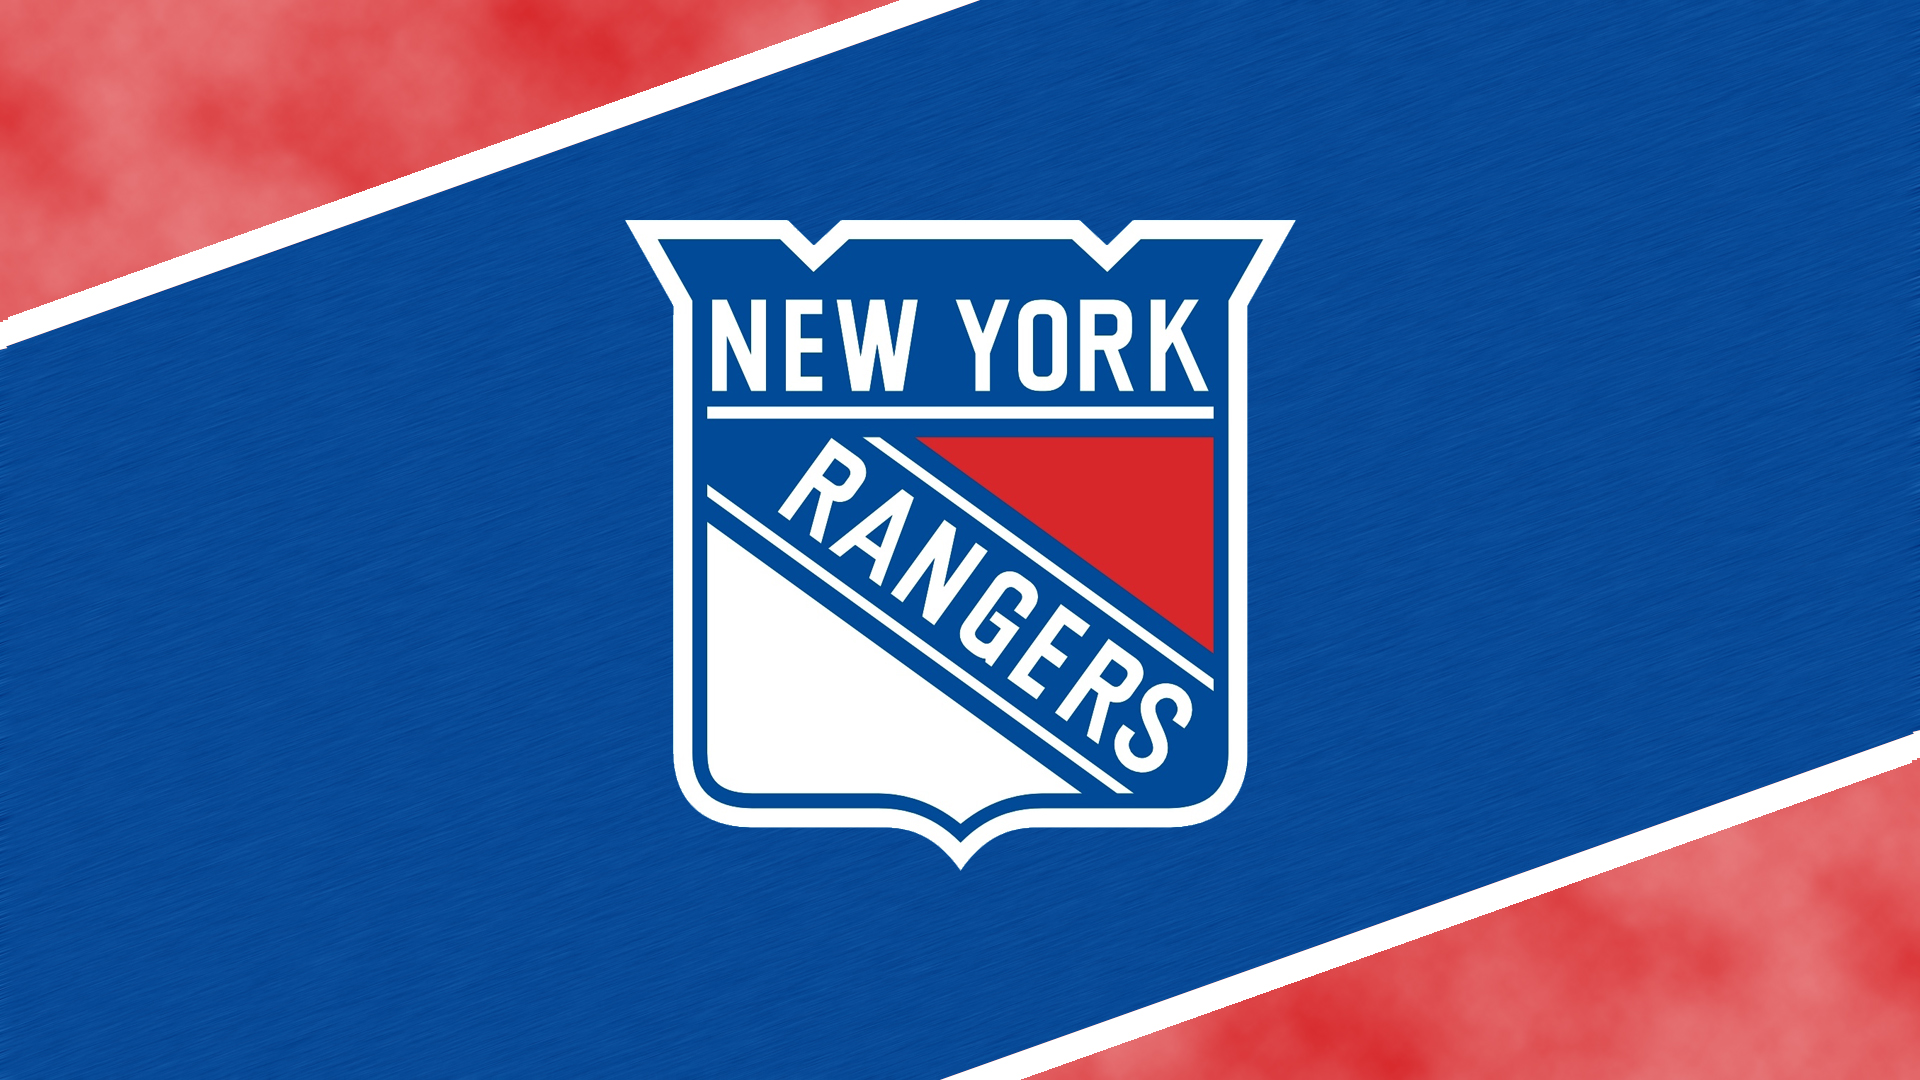 ny rangers logo wallpaper wallpapersafari